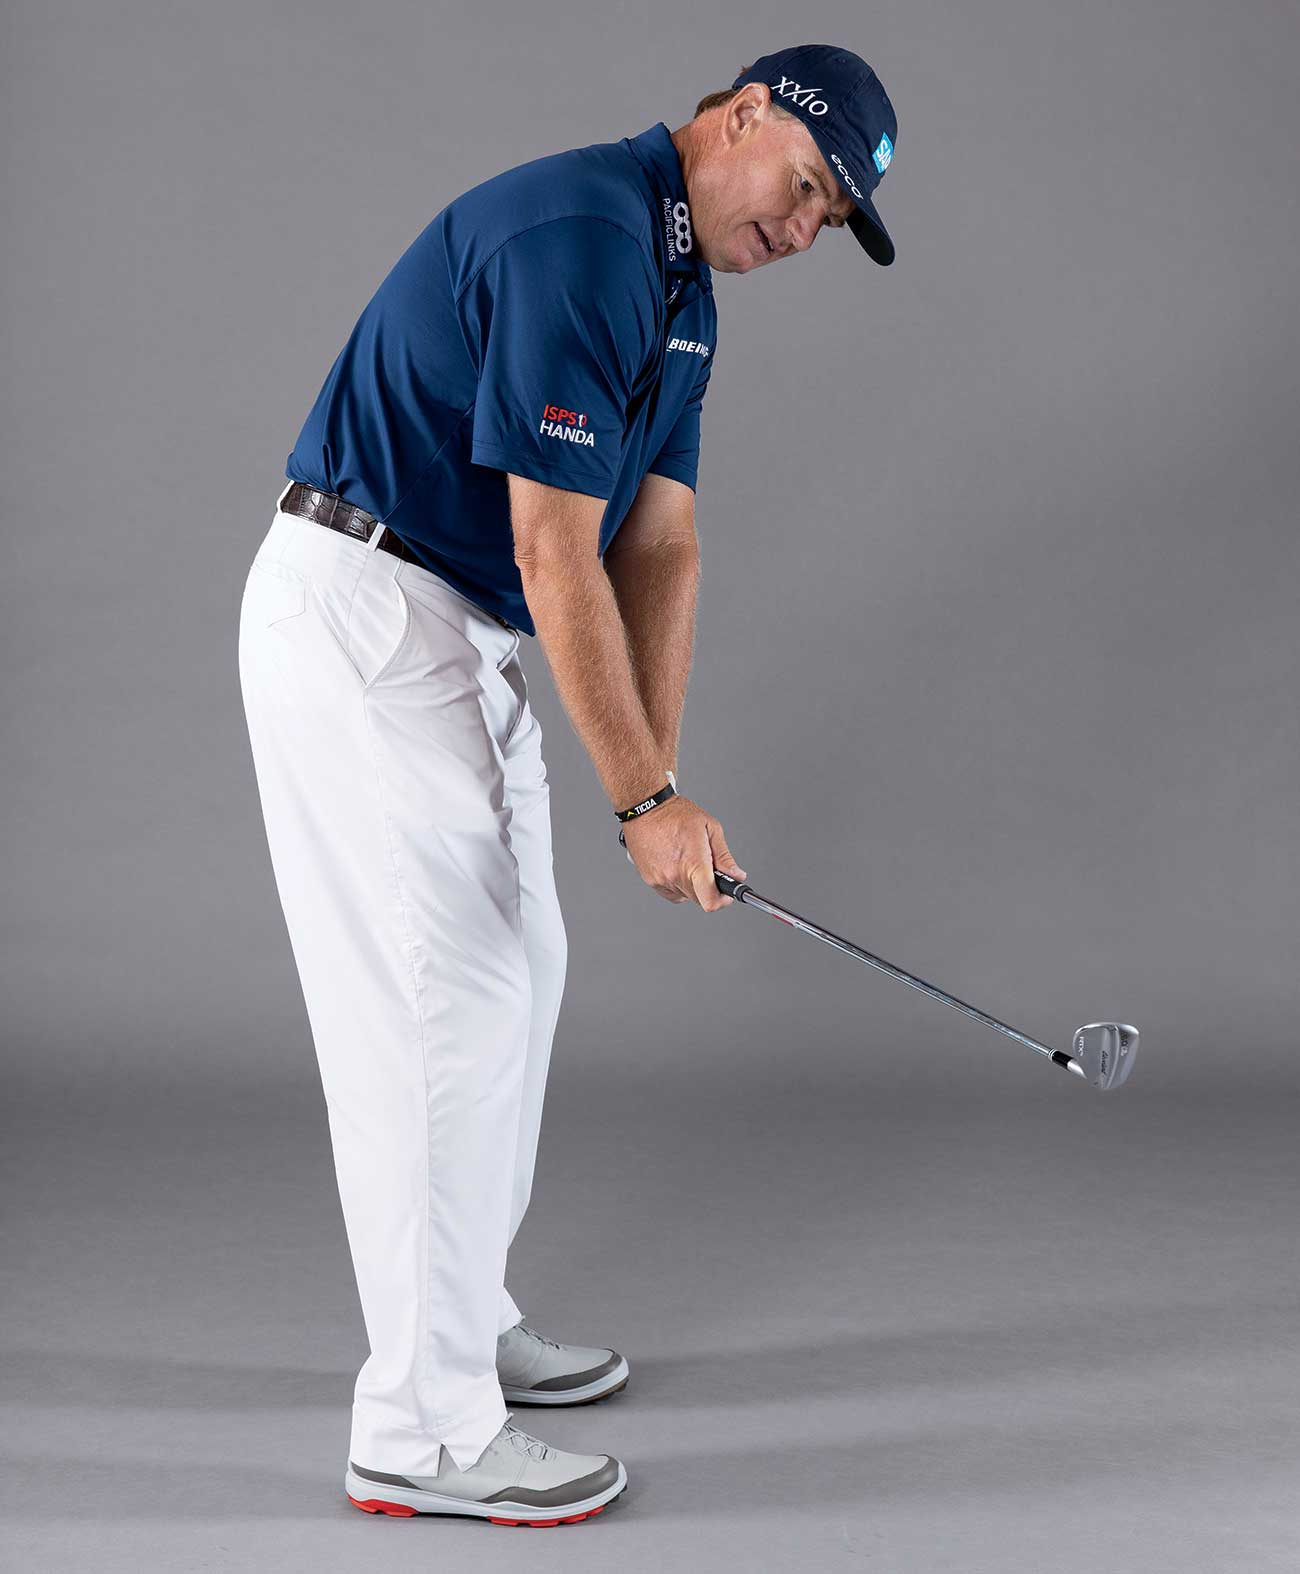 Ernie Els gives a wedge tip.